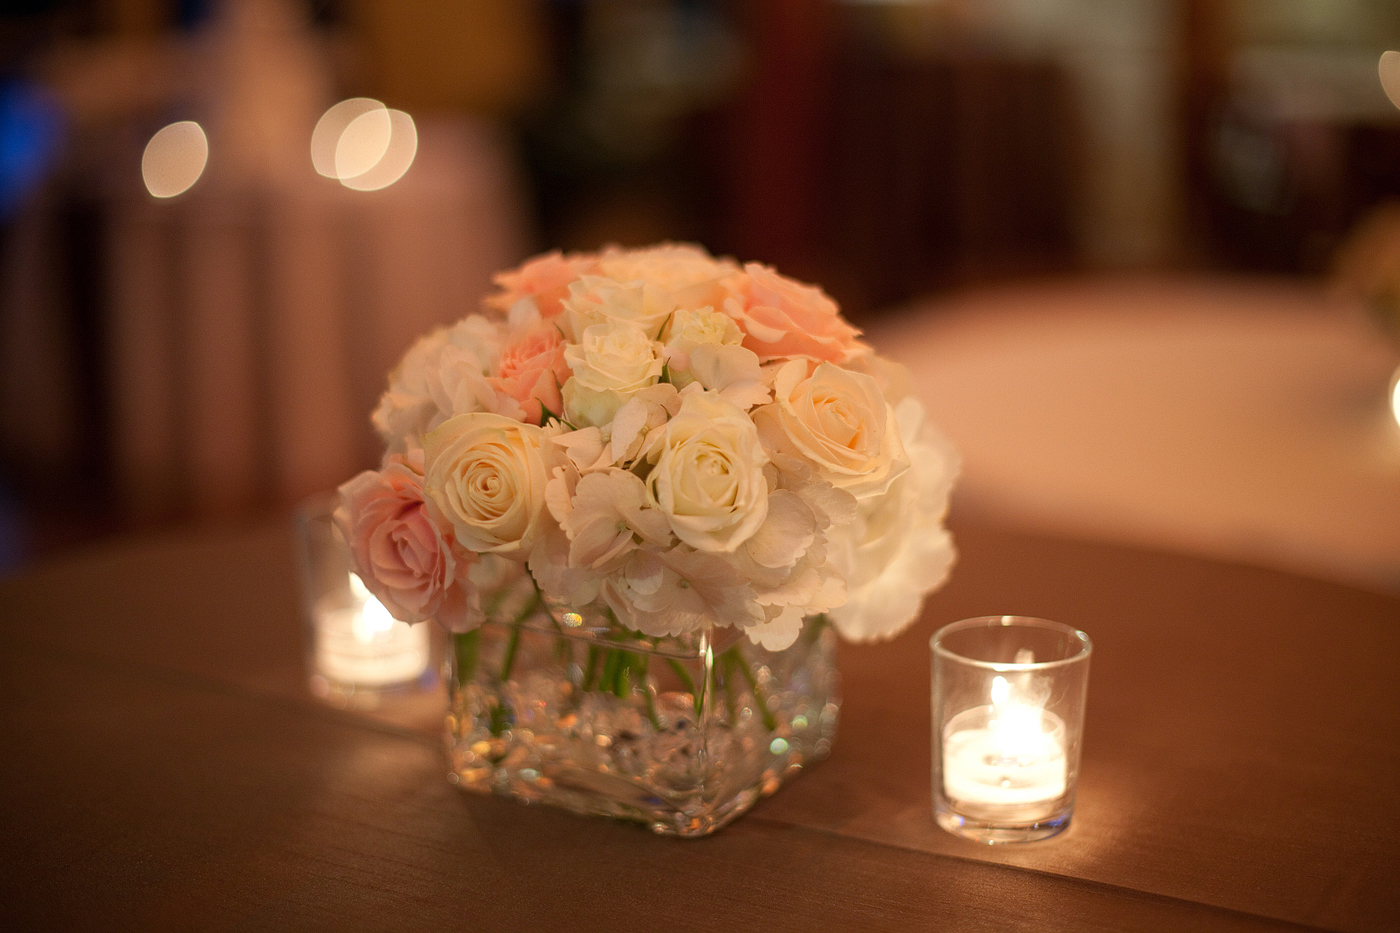 Hydrangea Rose Wedding Centerpieces: Alfa img showing gt rose and ...